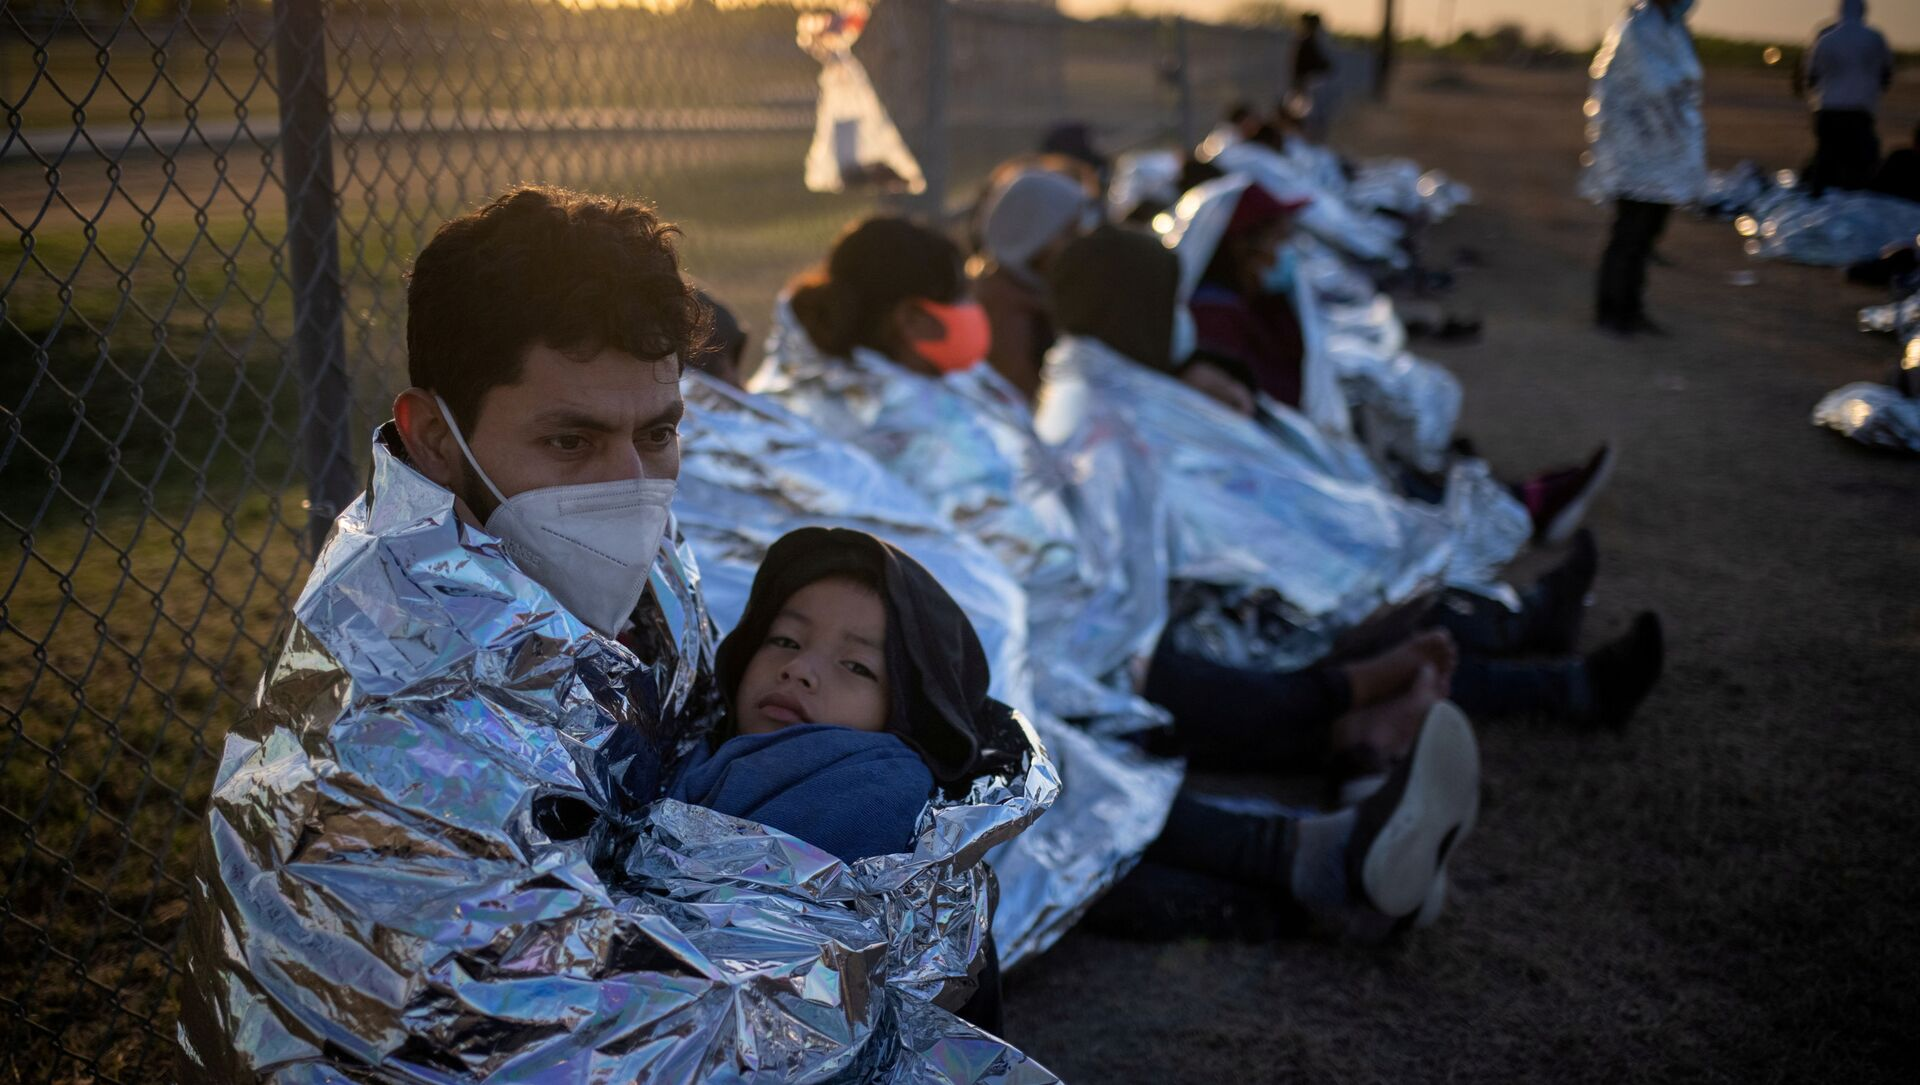 Dustin, an asylum-seeking migrant from Honduras, holds his six-year-old son Jerrardo, 6, as they awake at sunrise next to others who took refuge near a baseball field after crossing the Rio Grande river into the United States from Mexico on rafts, in La Joya, Texas, U.S., March 19, 2021. Emergency blankets were provided to the group of about 150 migrants from Central America by the U.S. Border Patrol agents.  - Sputnik International, 1920, 09.05.2021